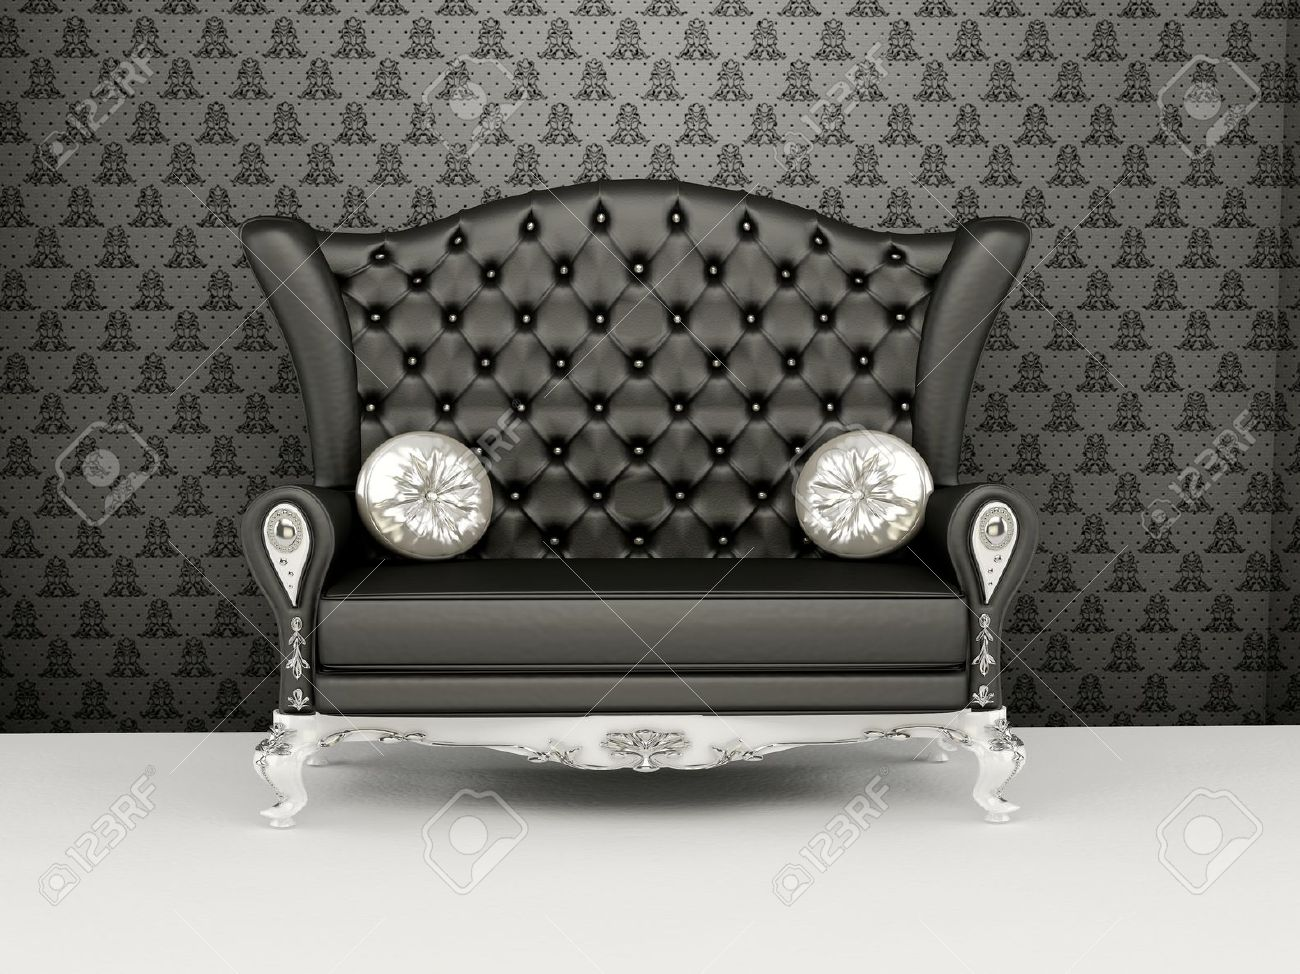 Sofa With Higher Back Before The Wallpaper Interior Exhibition